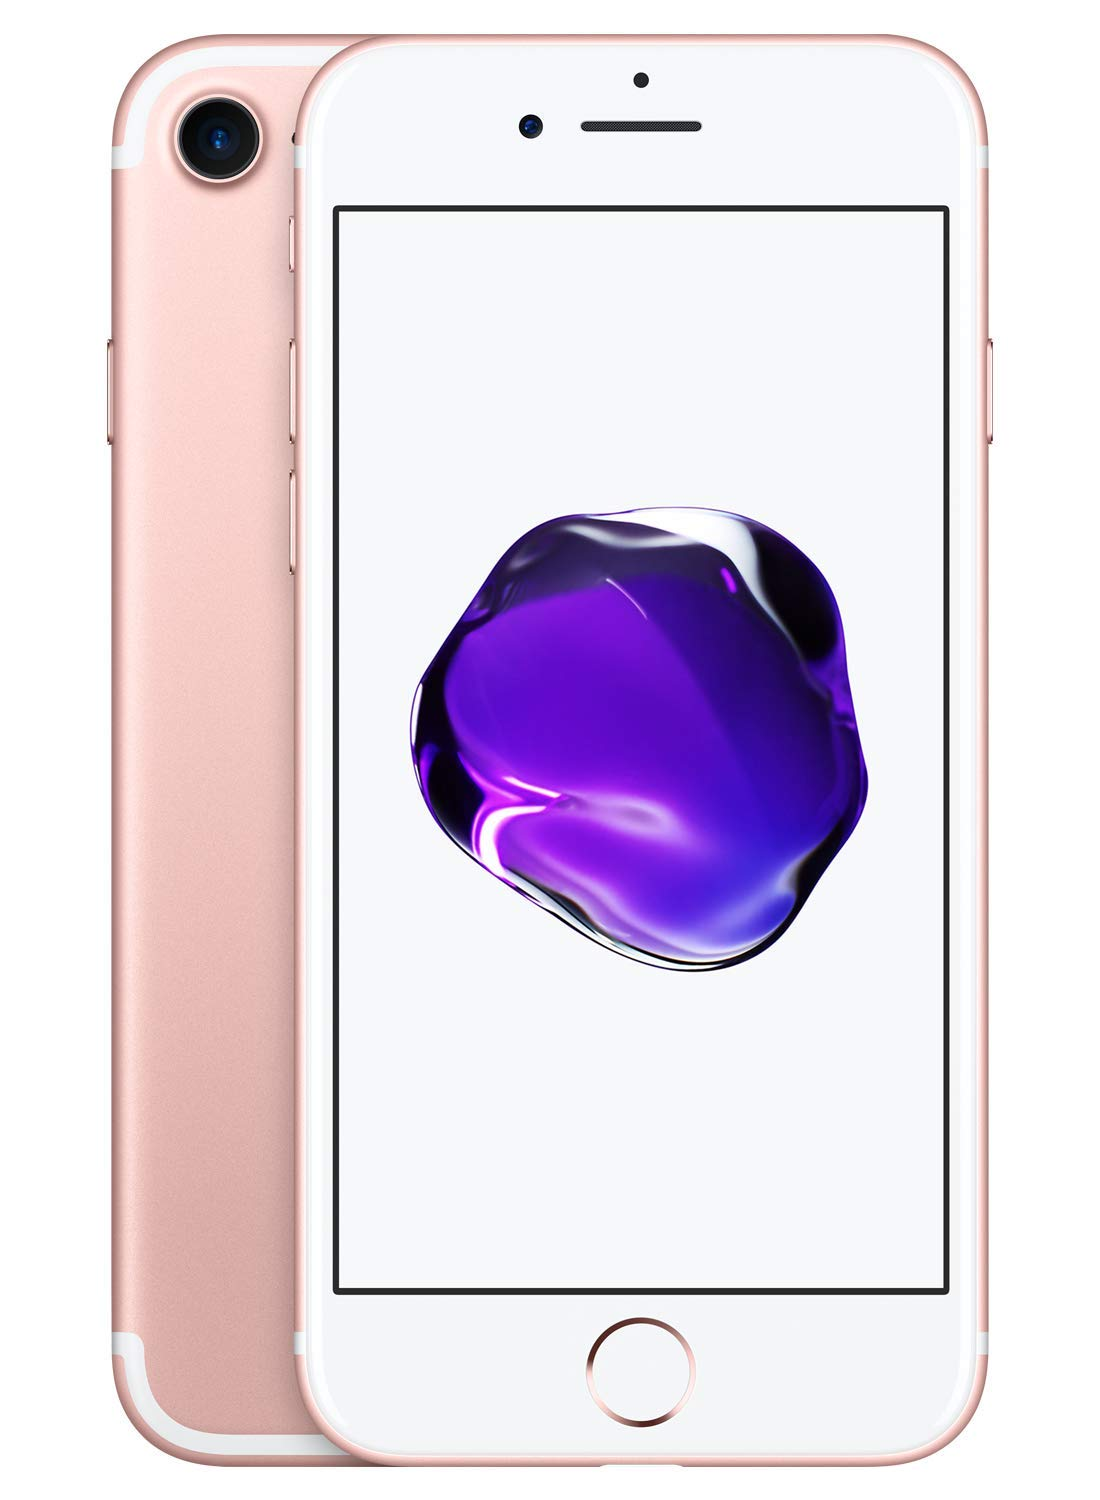 Apple Iphone 7 32gb Rose Gold Buy Online In India At Desertcart In Productid 48120768